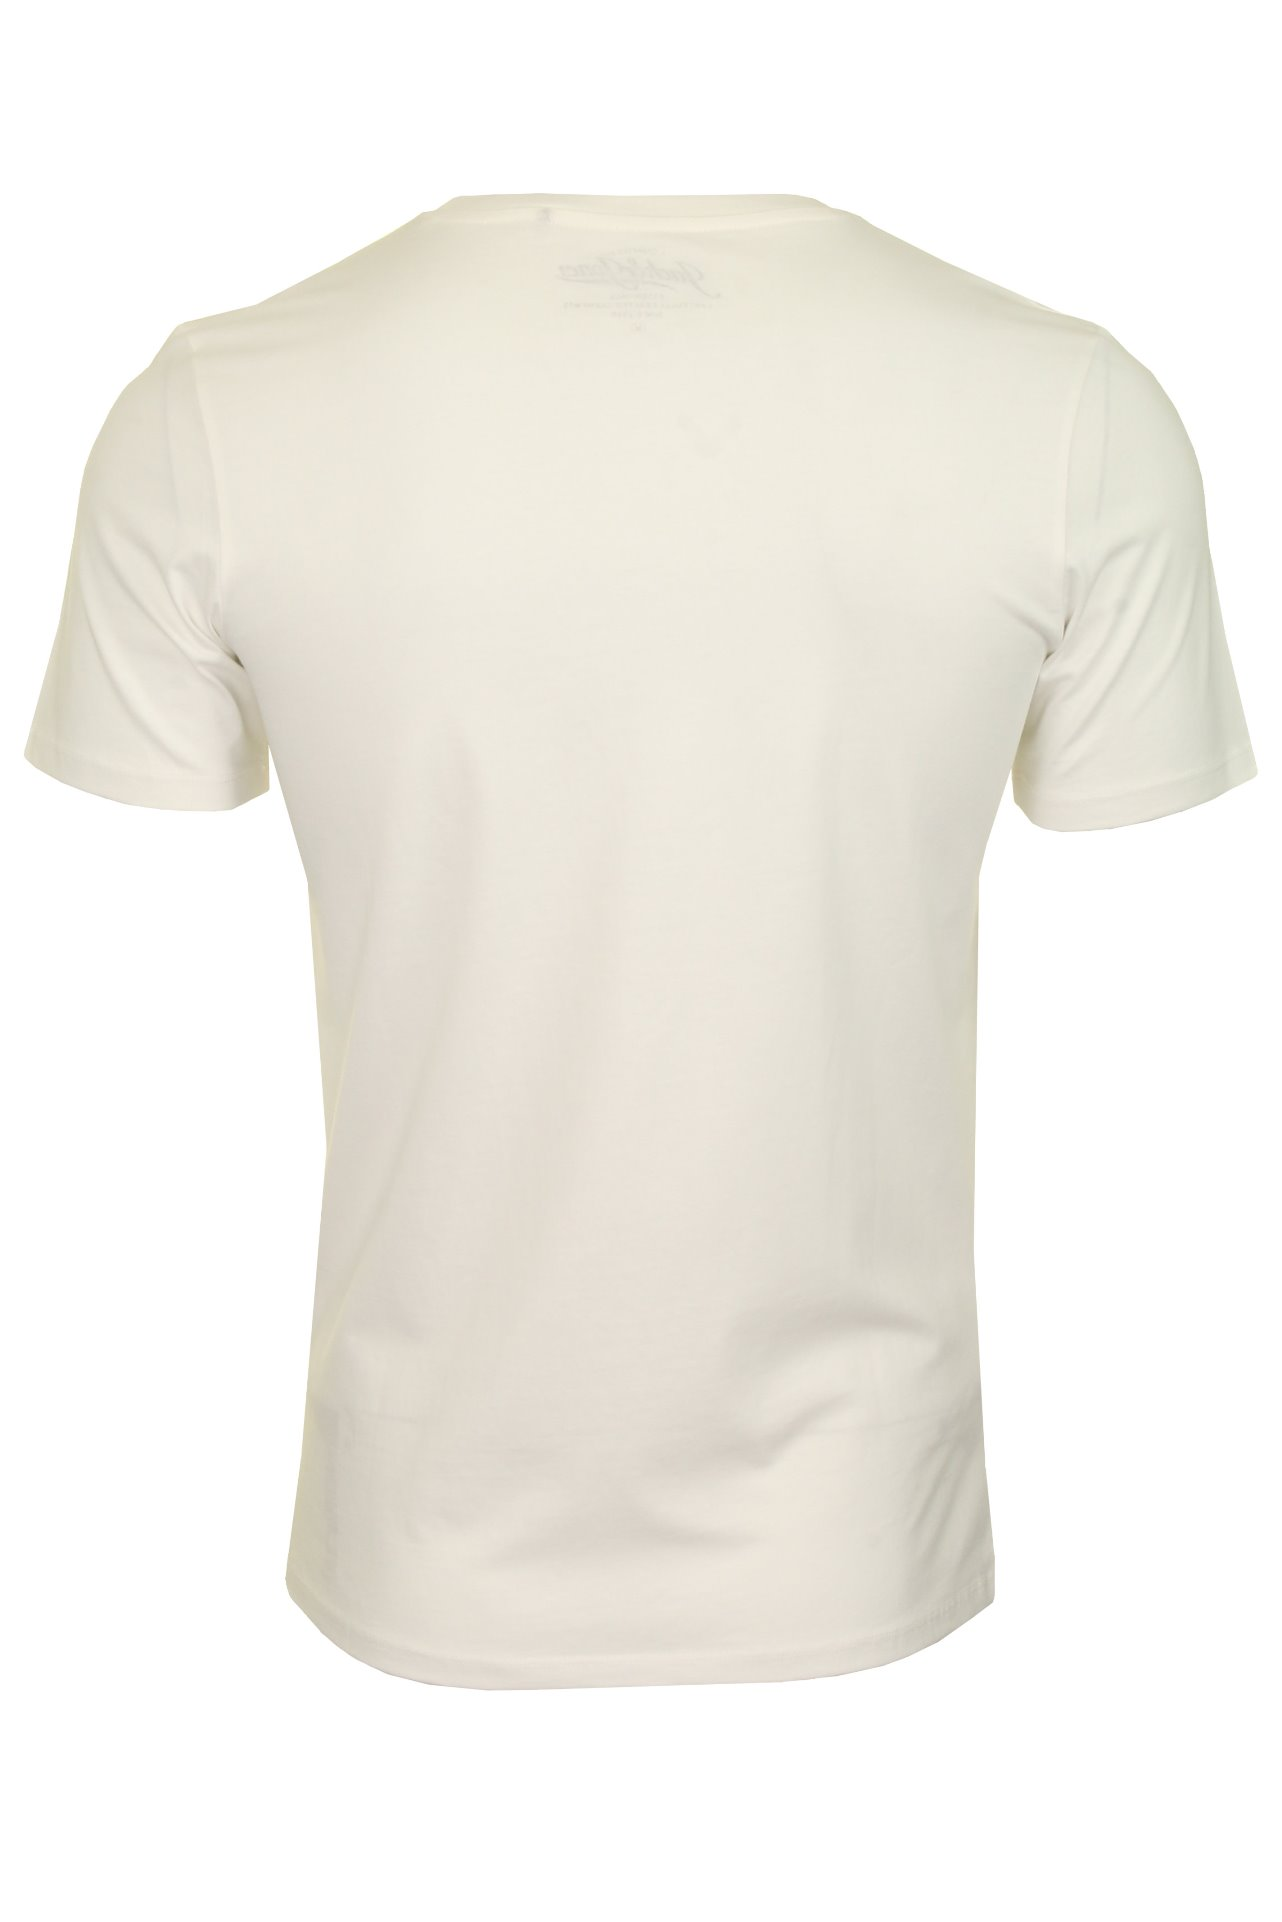 Jack-amp-Jones-Mens-039-JJE-Logo-Tee-039-T-Shirt thumbnail 8